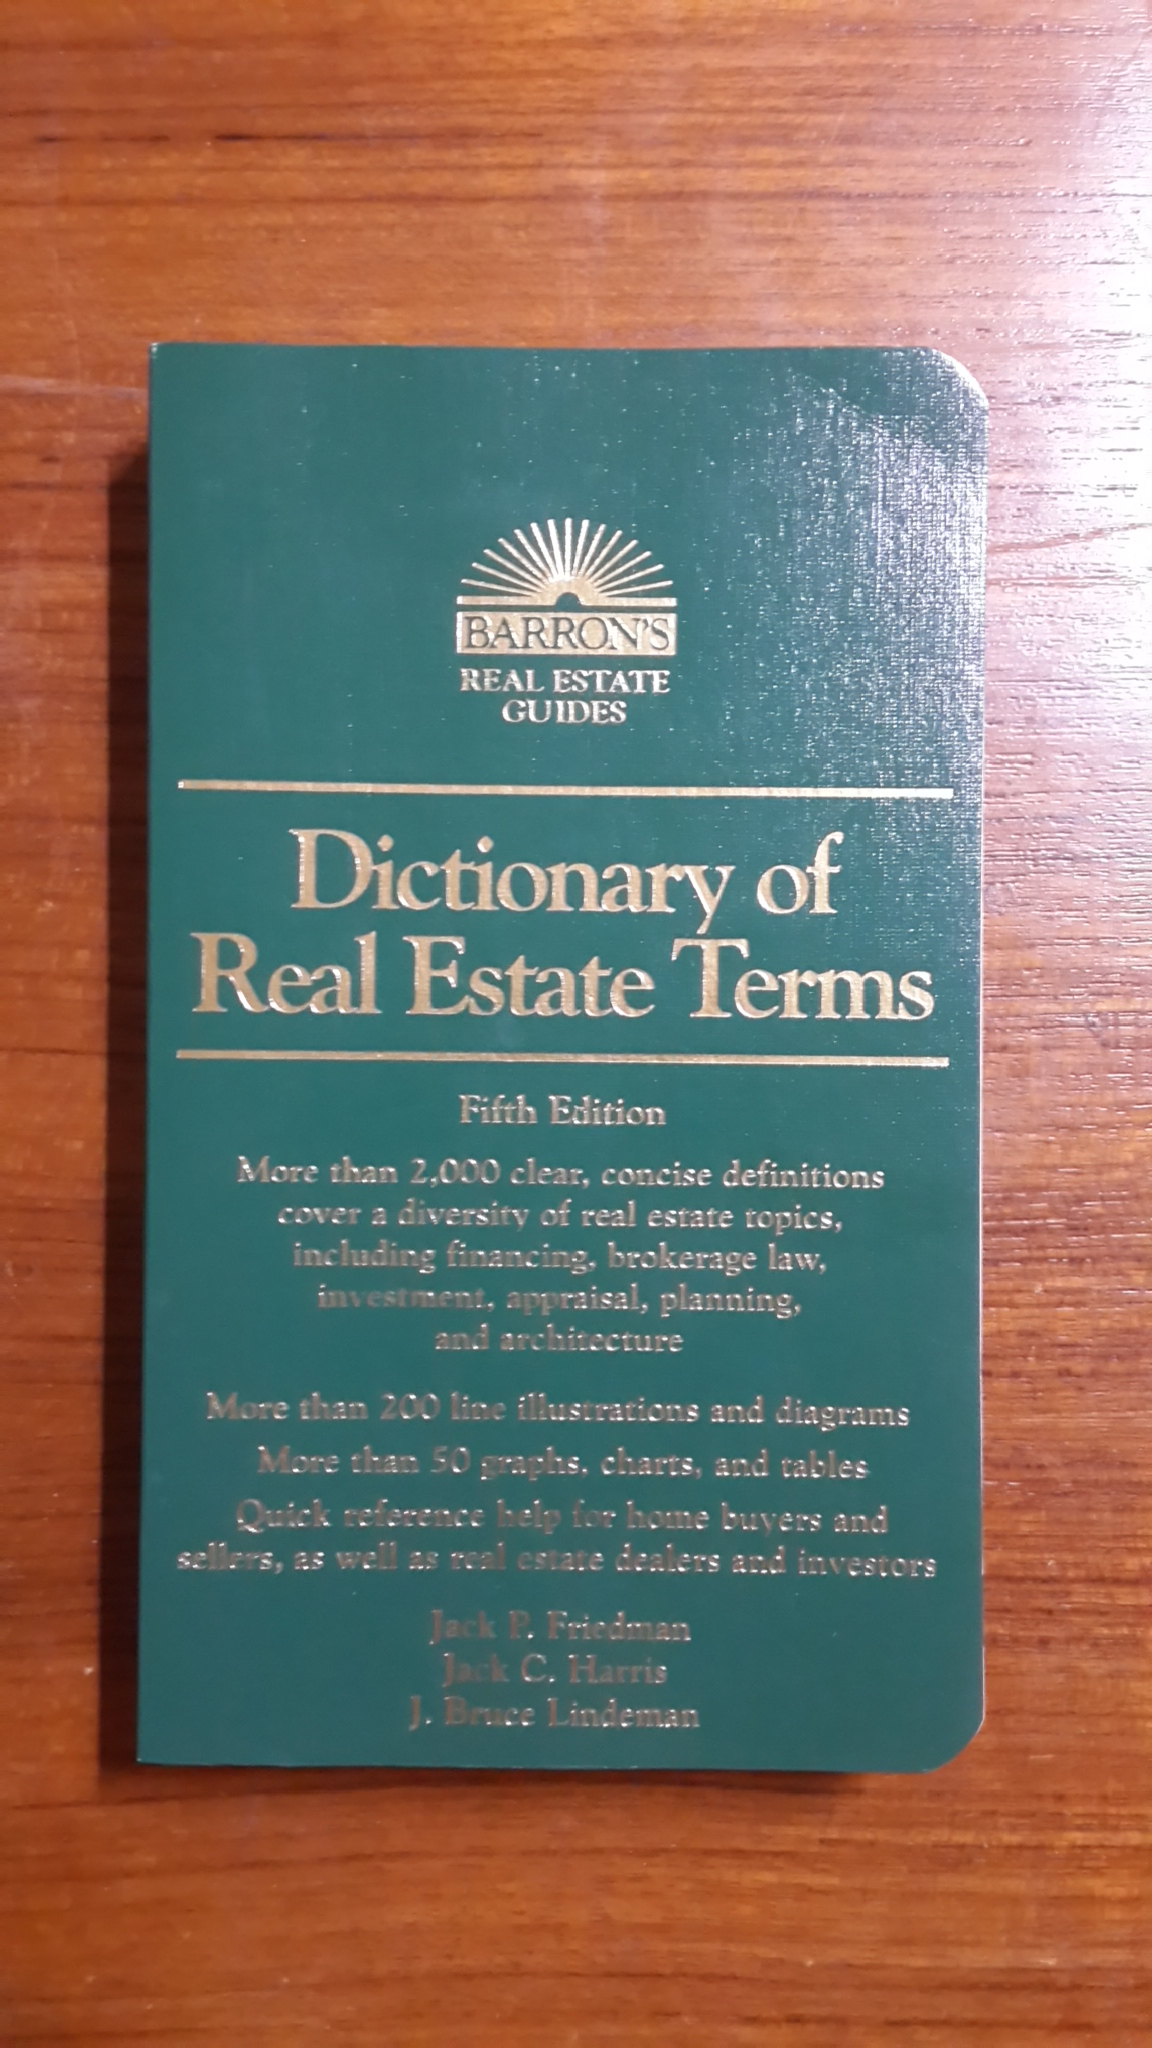 Dictionary o Real Estate Terms